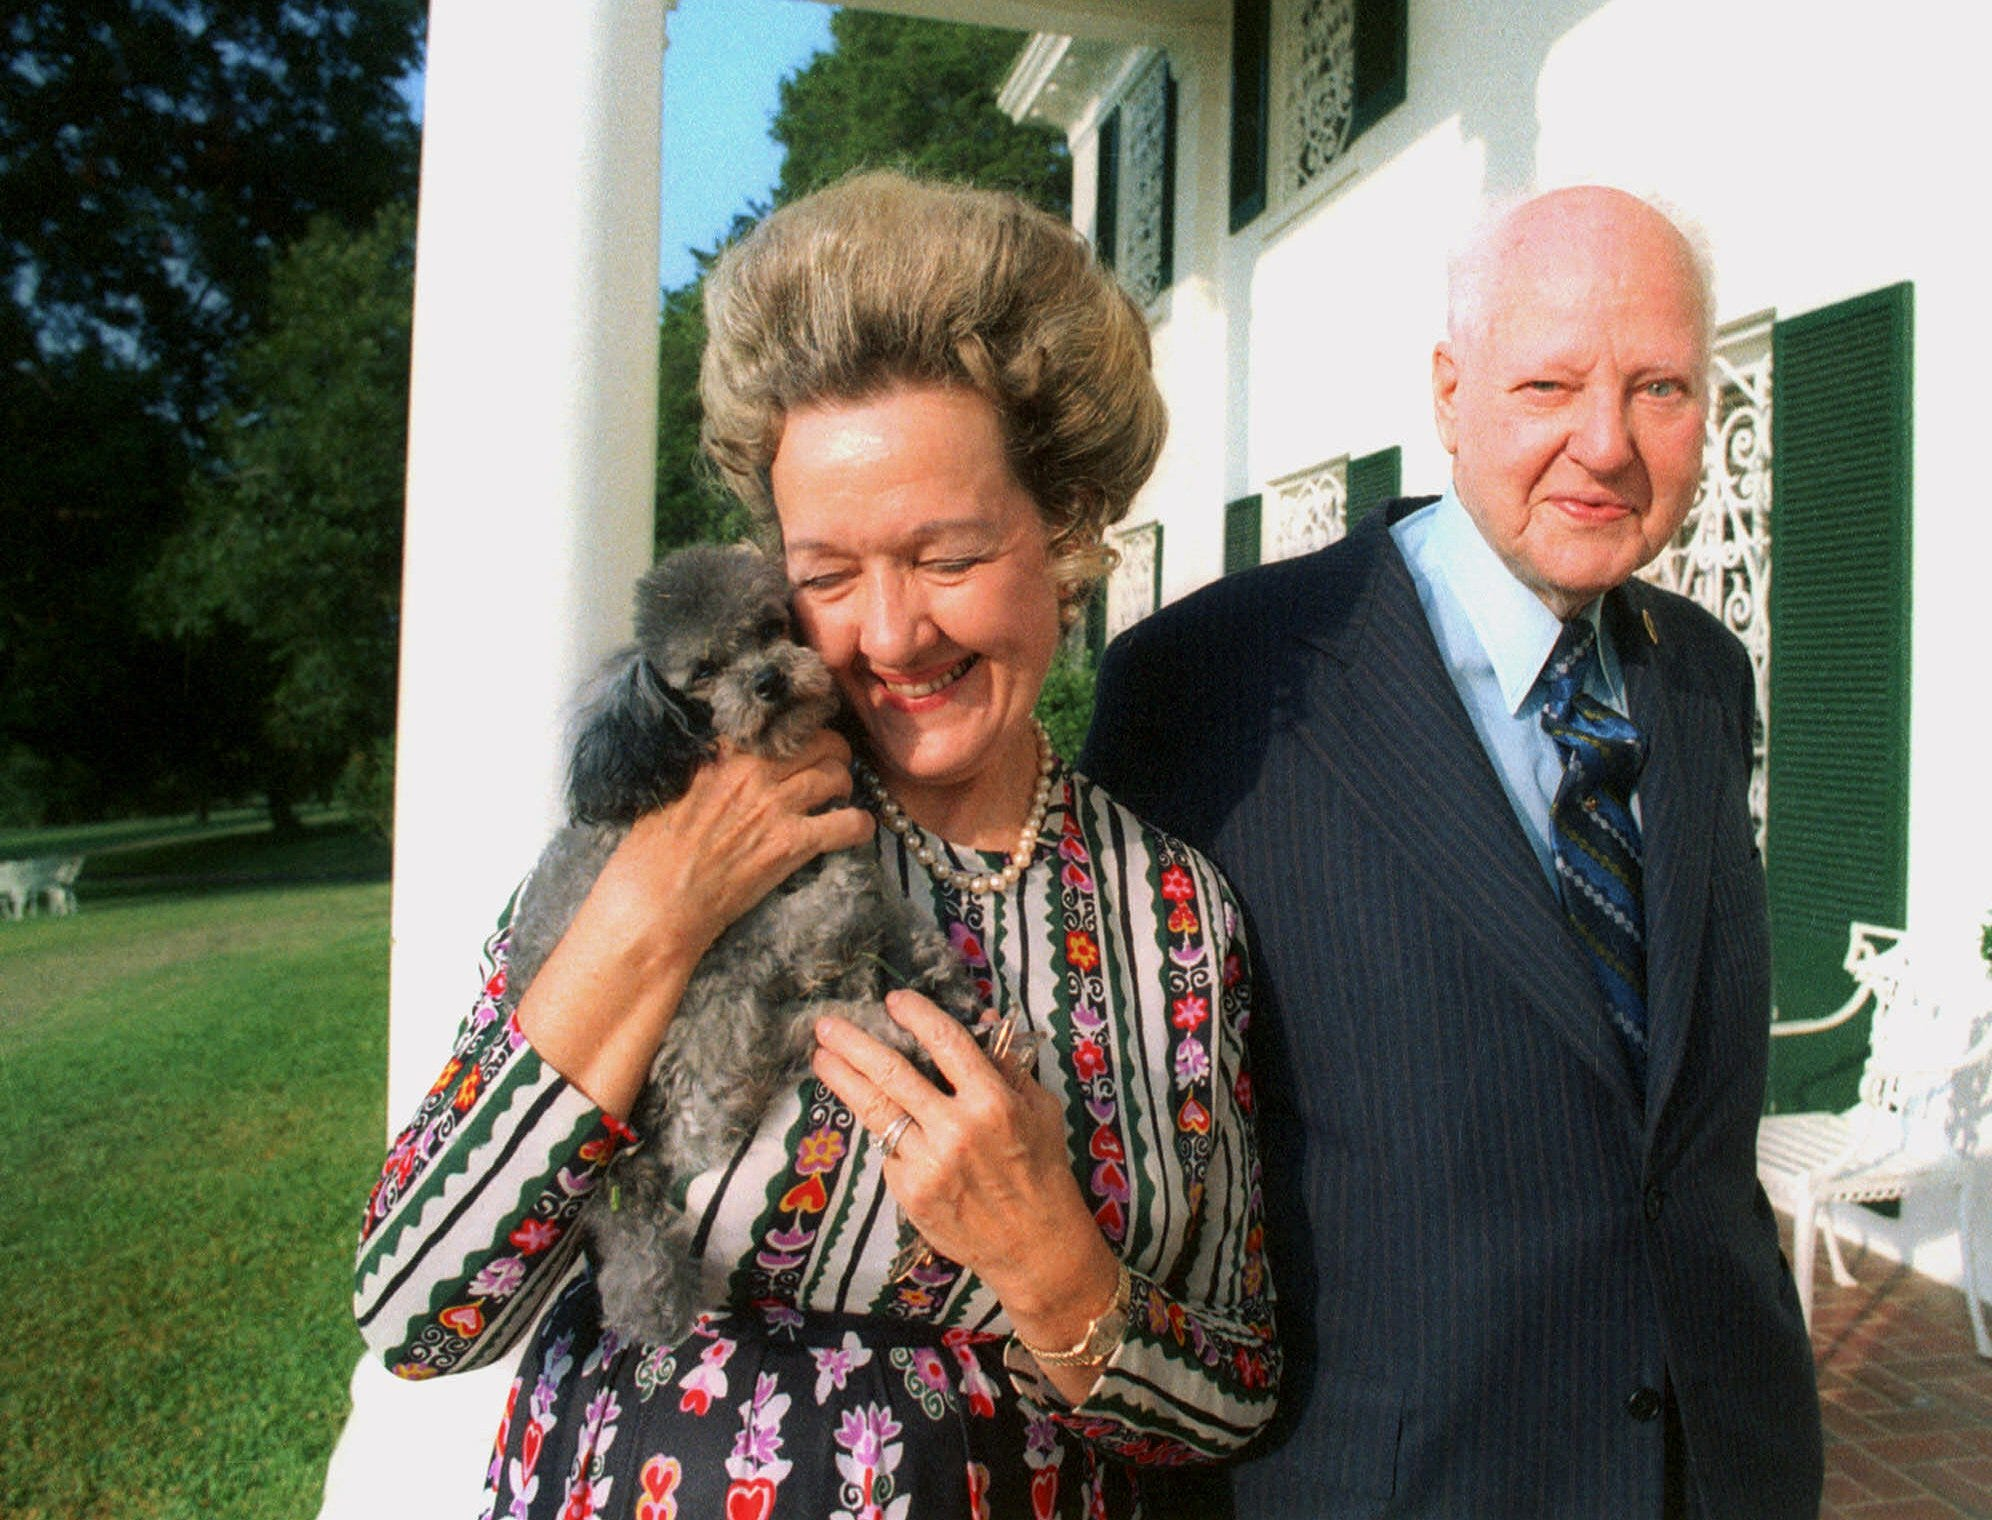 H.L. Hunt shown with one of his wives in 1972.